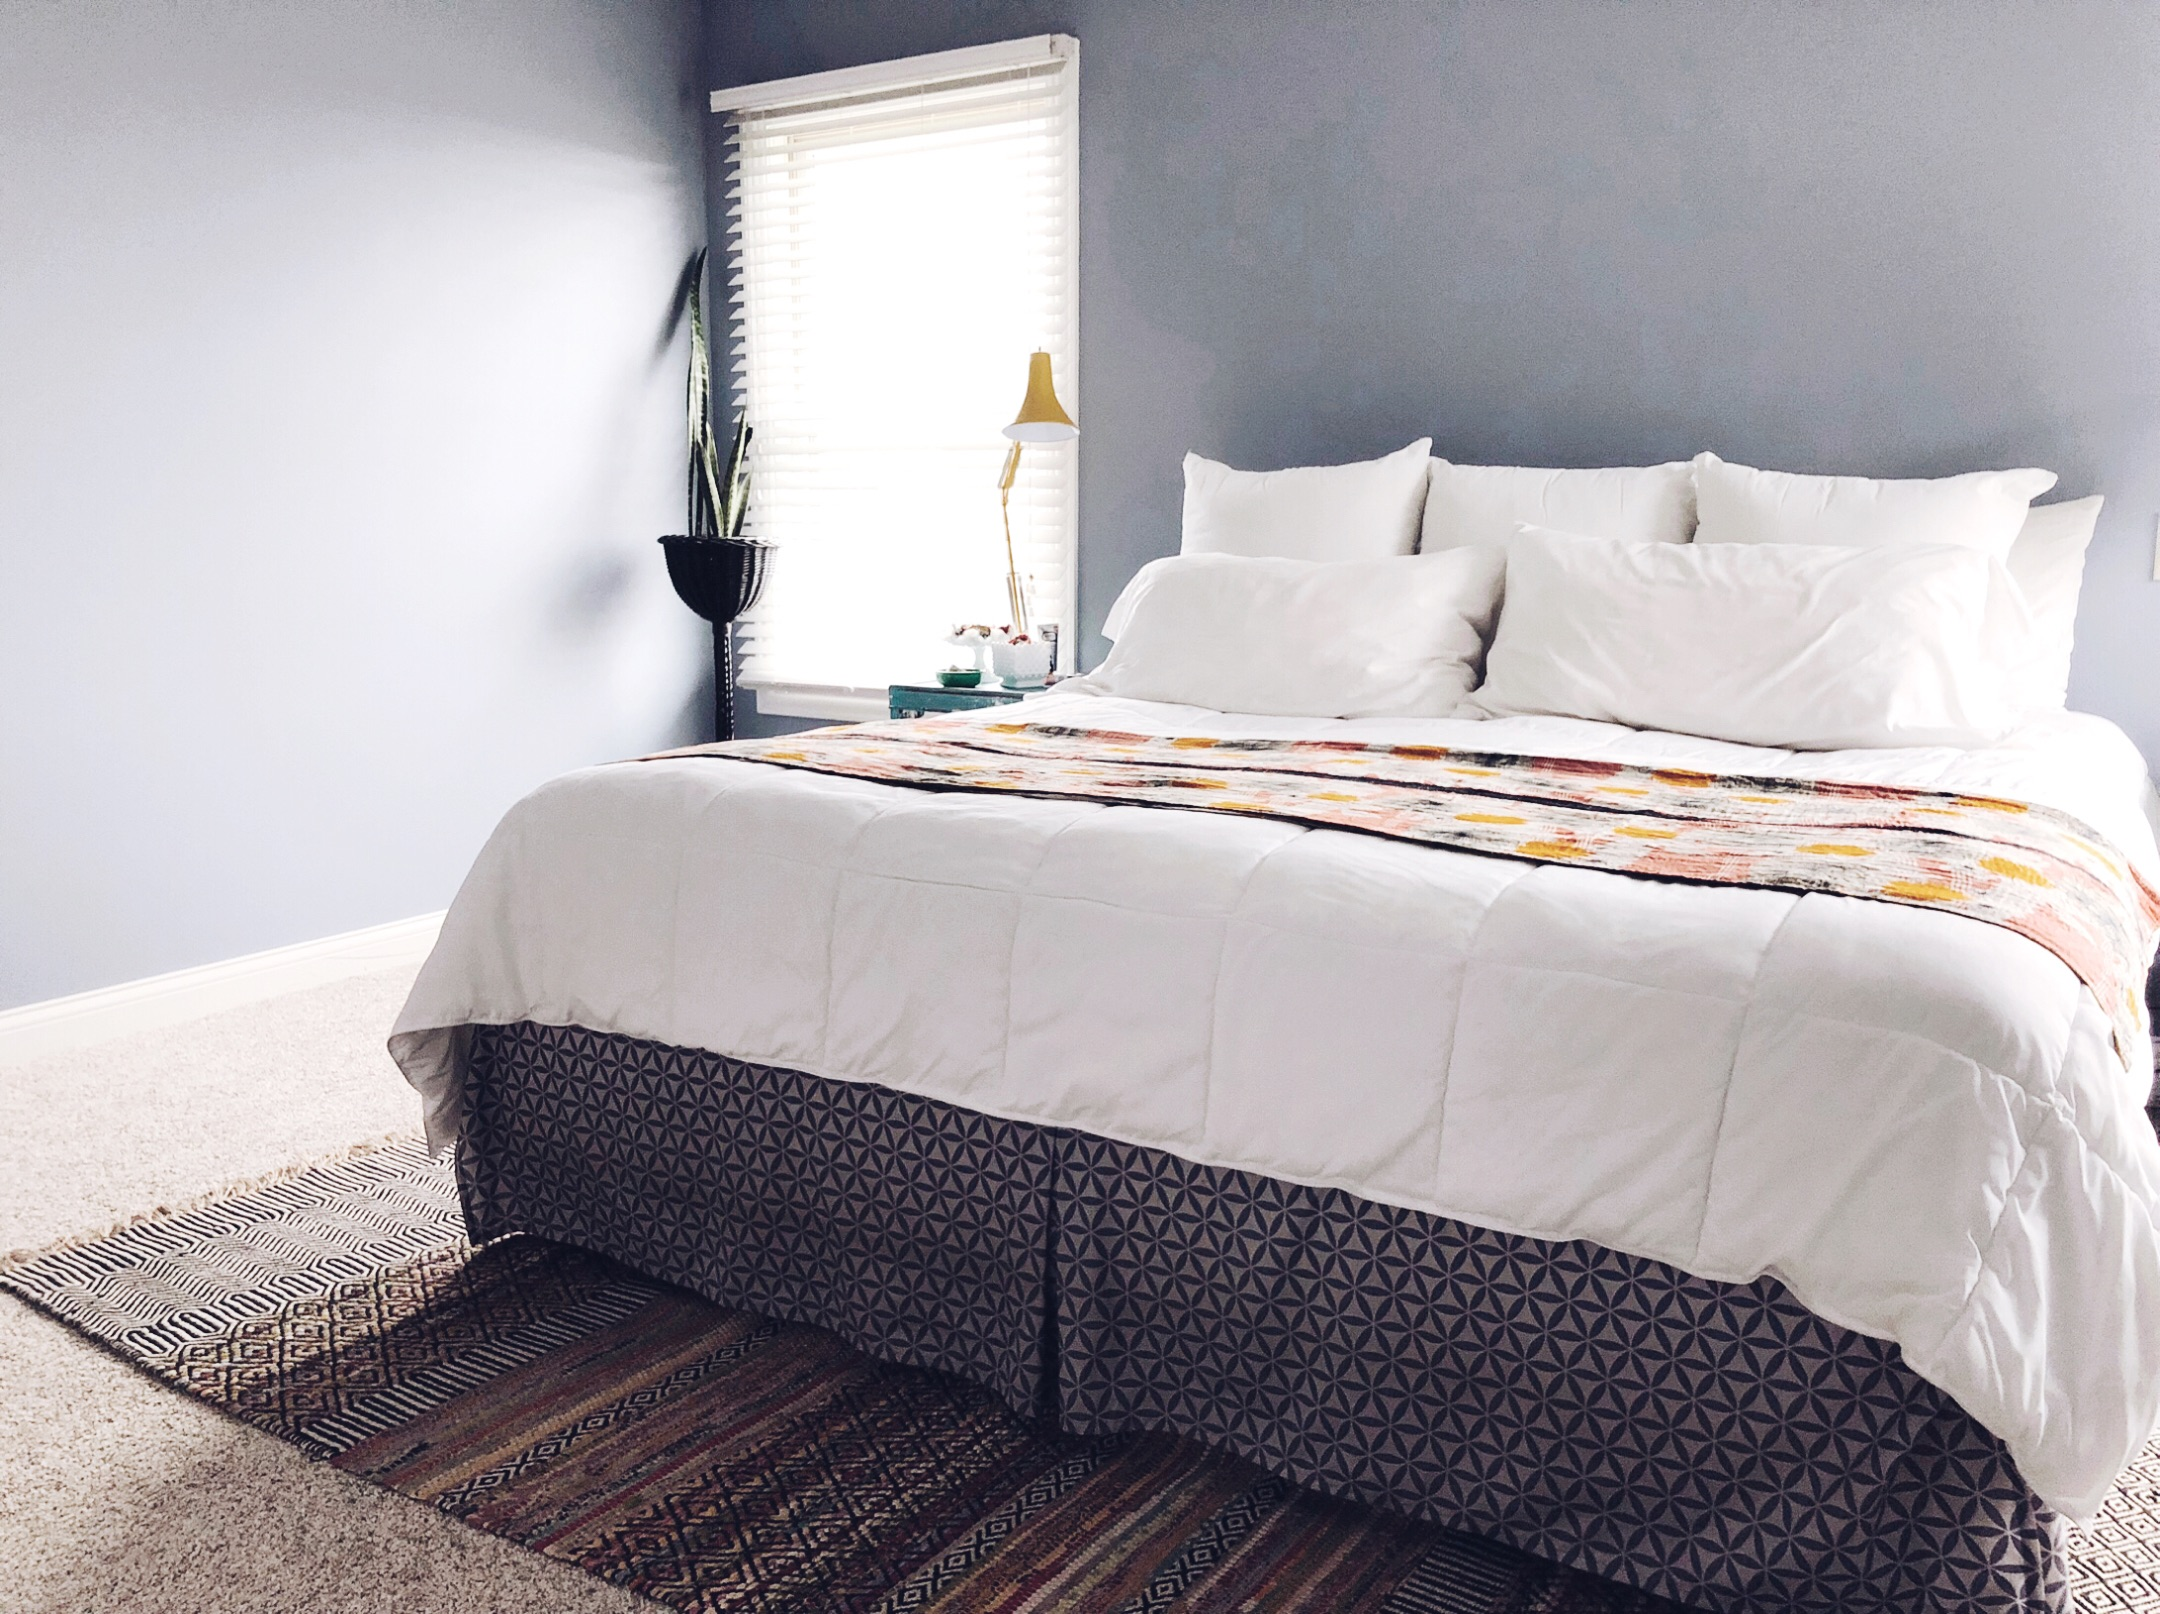 Master Bedroom Shopping Checklist from HPrallandCo.com   H.Prall & Co. Interior Decorating, Des Moines, IA